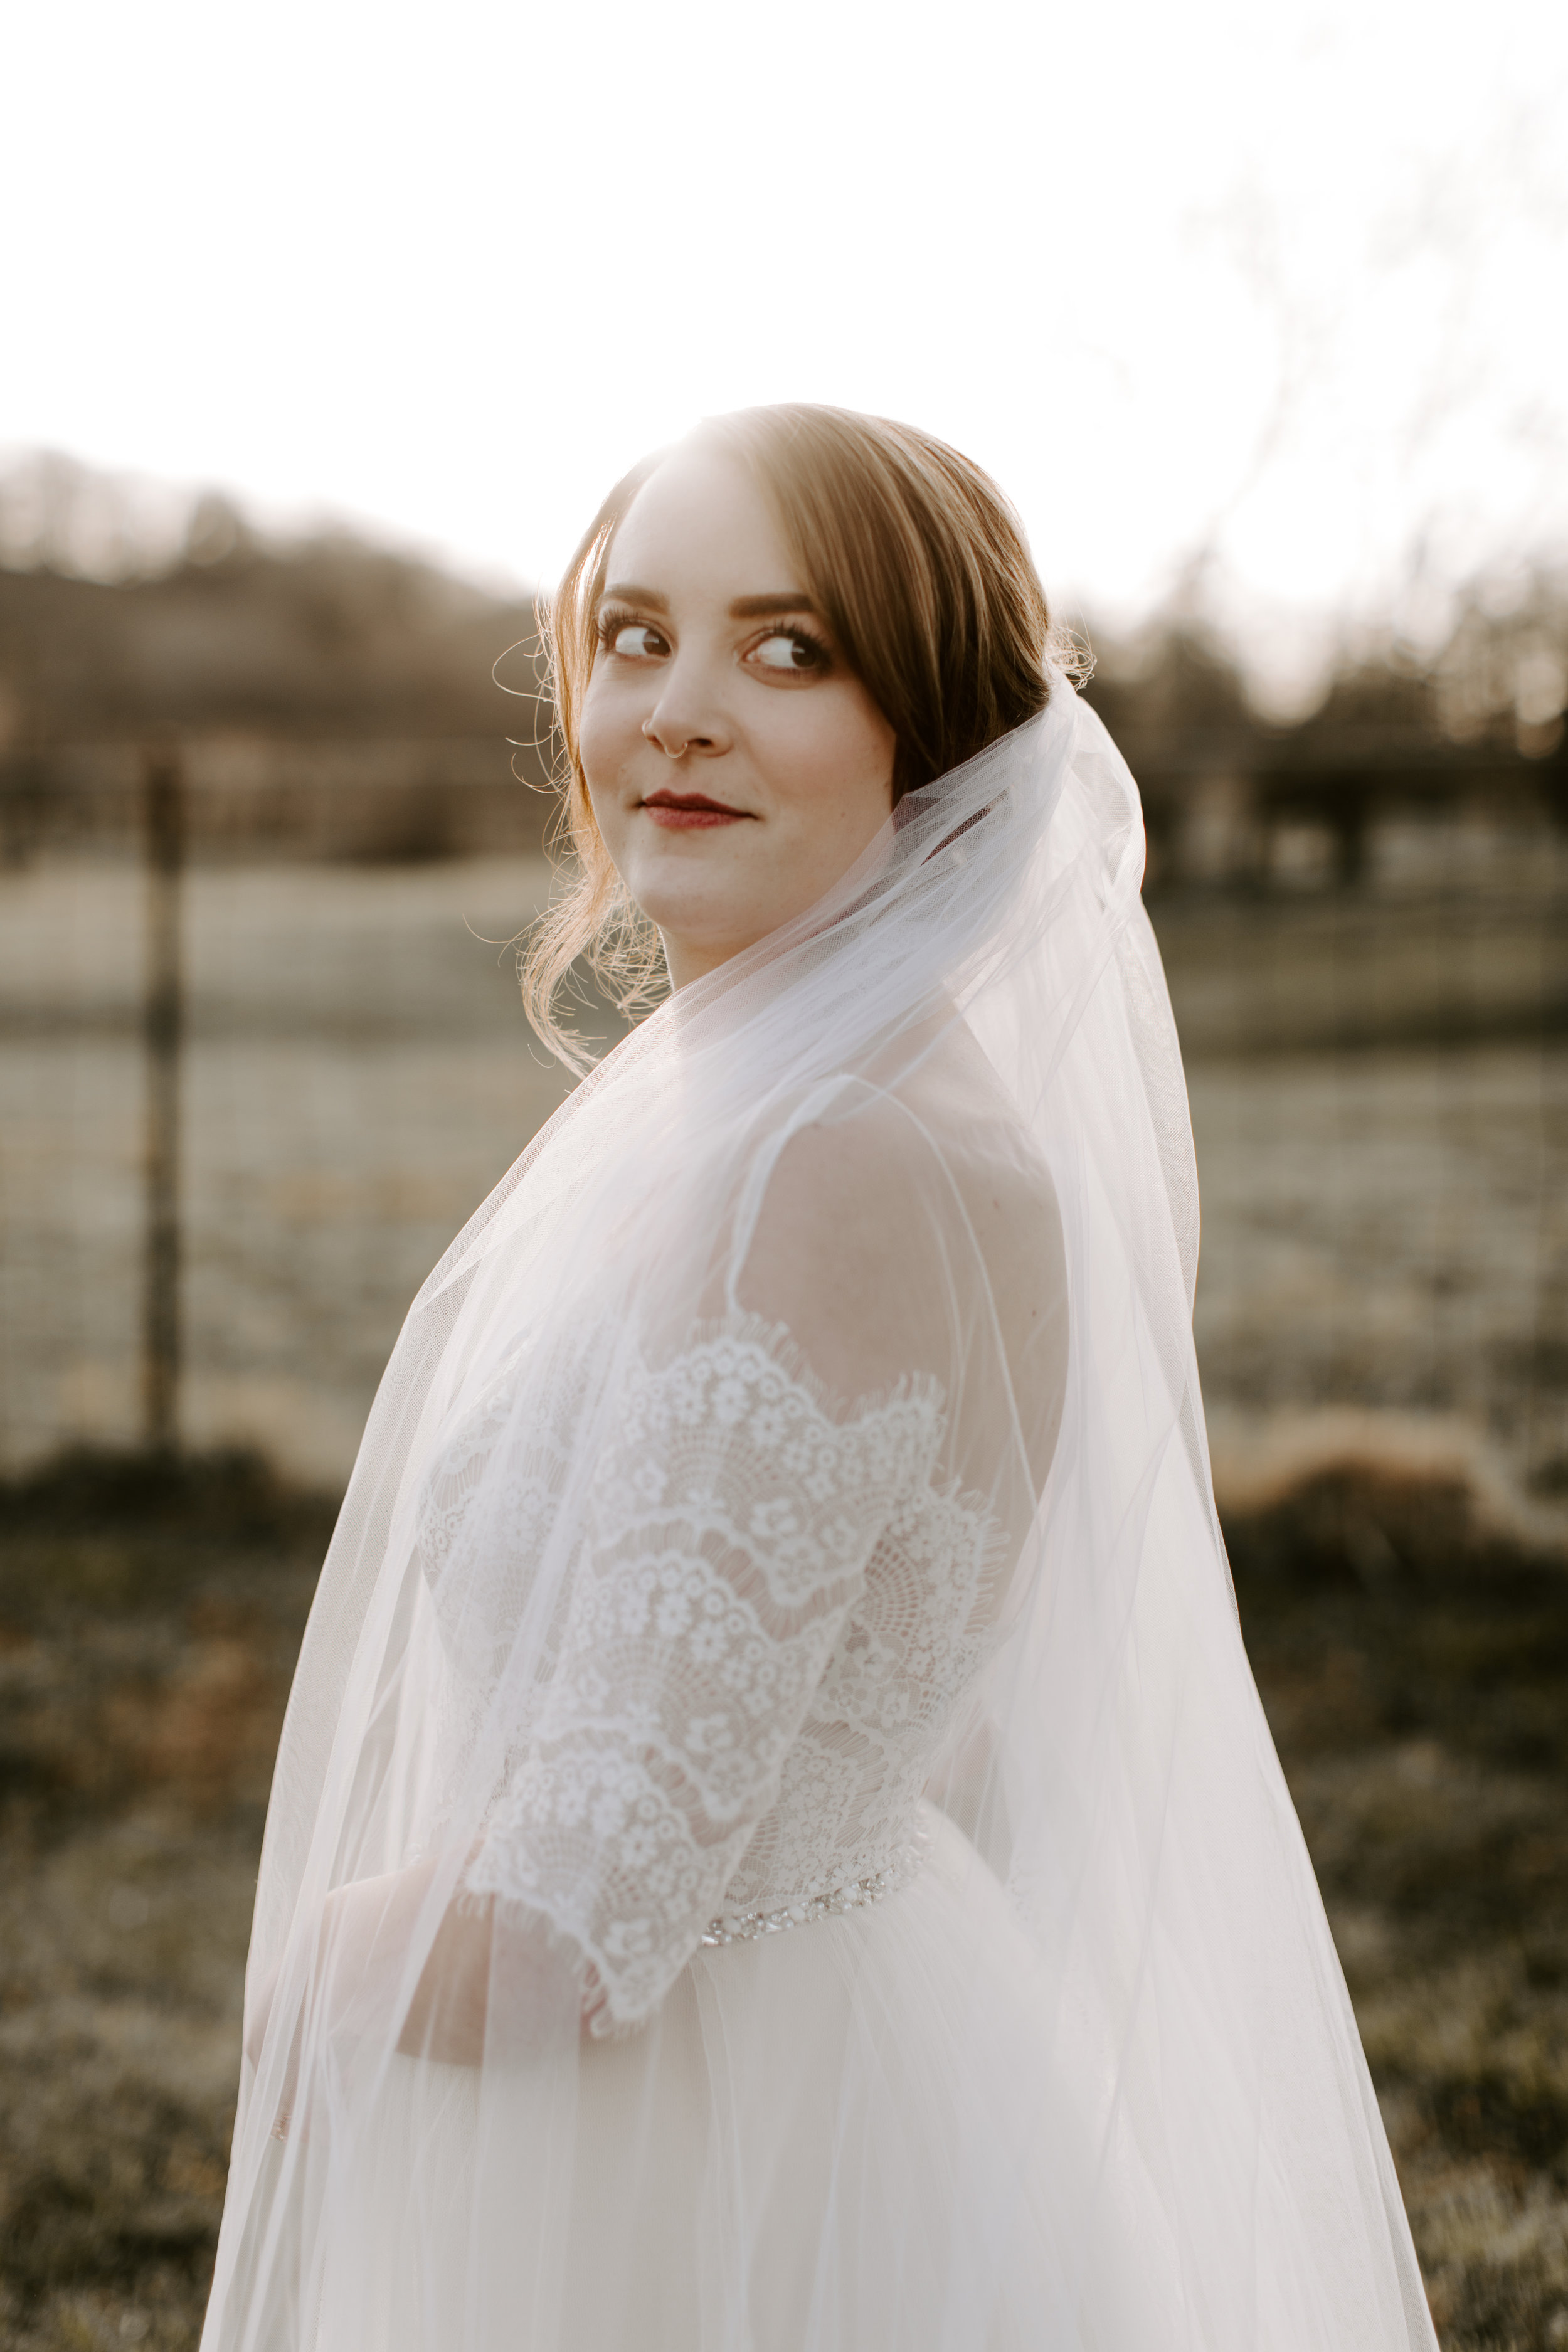 Sunset Veil Flowing In the Wind Portraits